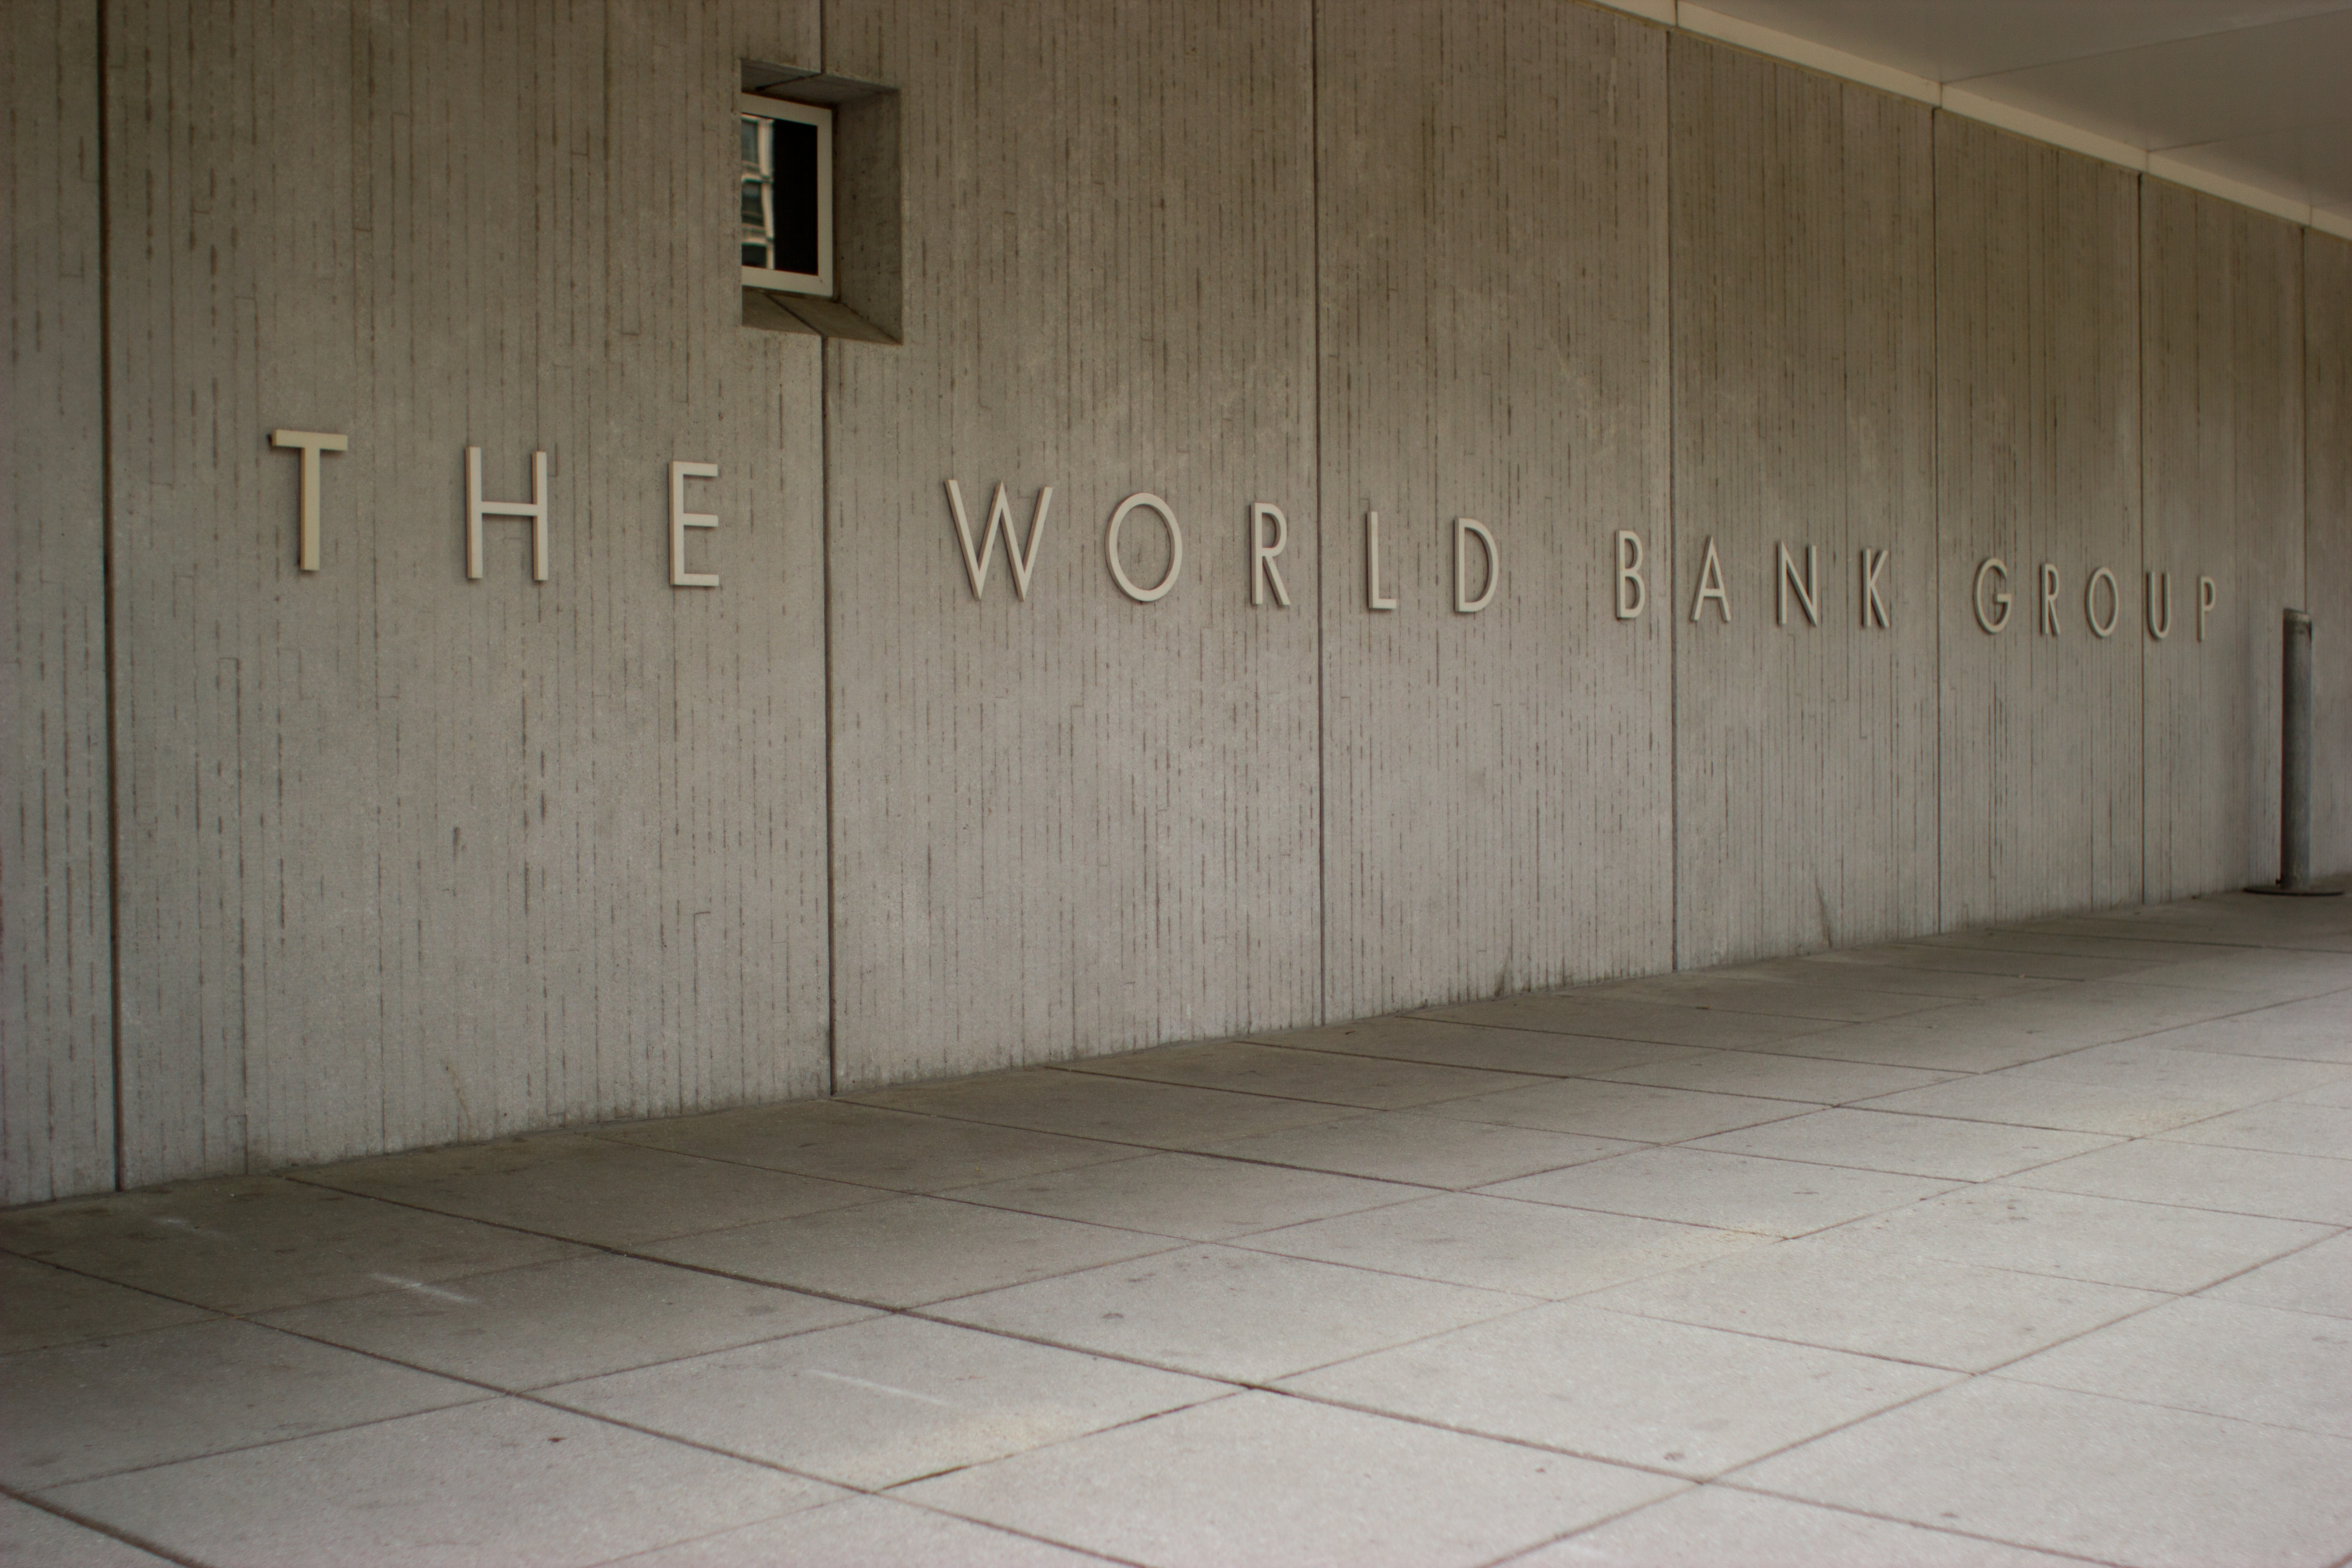 The World Bank Sign on The